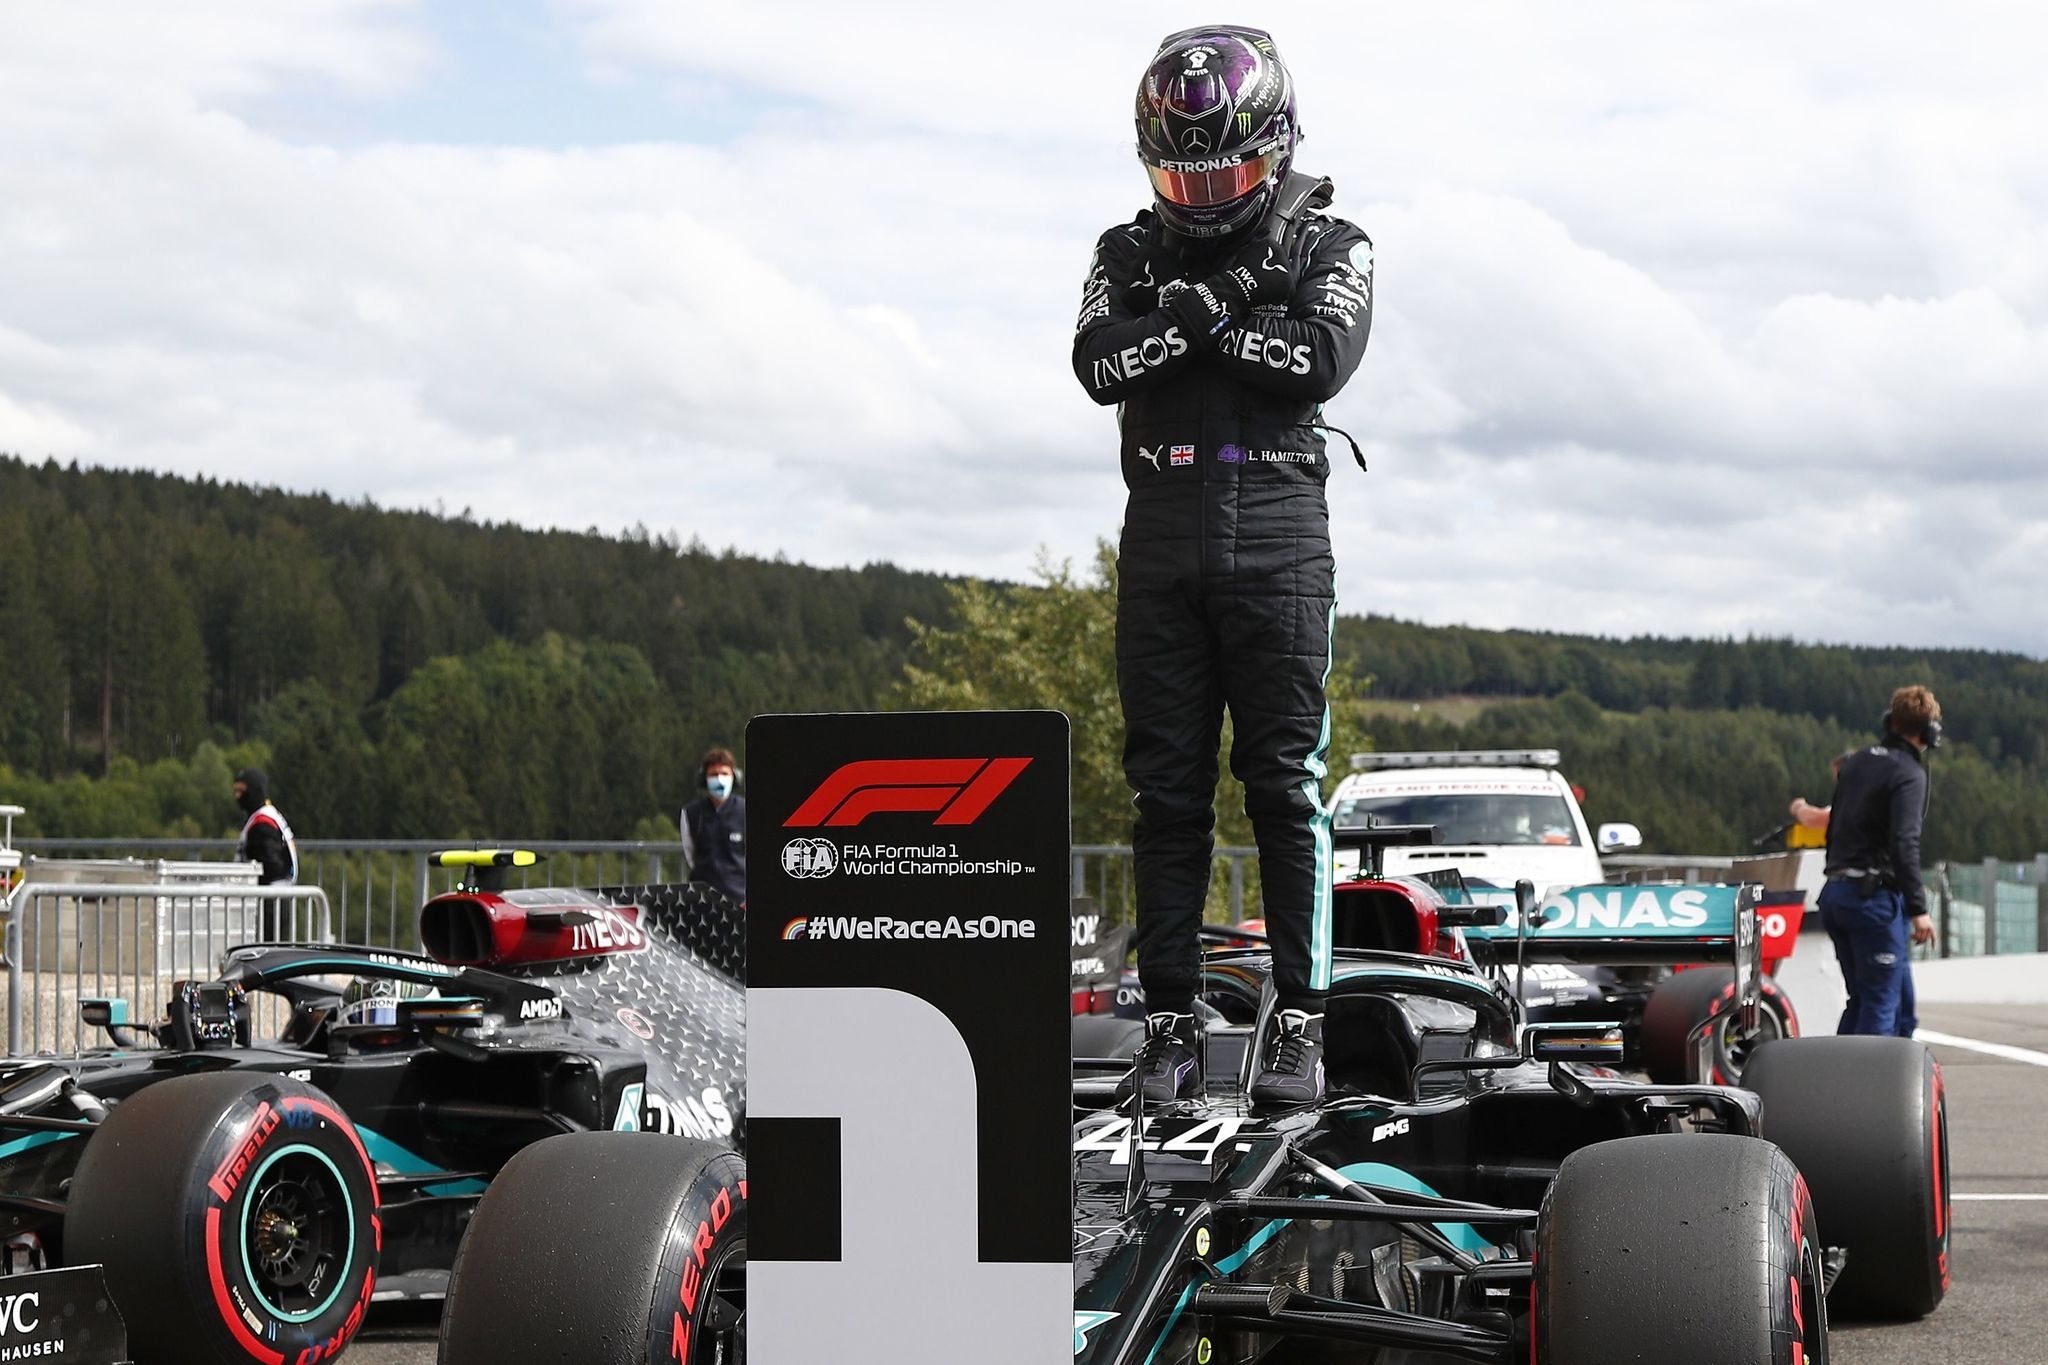 TOPSHOT - CORRECTION - Mercedes' British driver lt;HIT gt;Lewis lt;/HIT gt; lt;HIT gt;Hamilton lt;/HIT gt; gestures as he stands on his car after winning the Belgian Formula One Grand Prix at the Spa-Francorchamps circuit in Spa on August 29, 2020. (Photo by FRANCOIS LENOIR / POOL / AFP) /